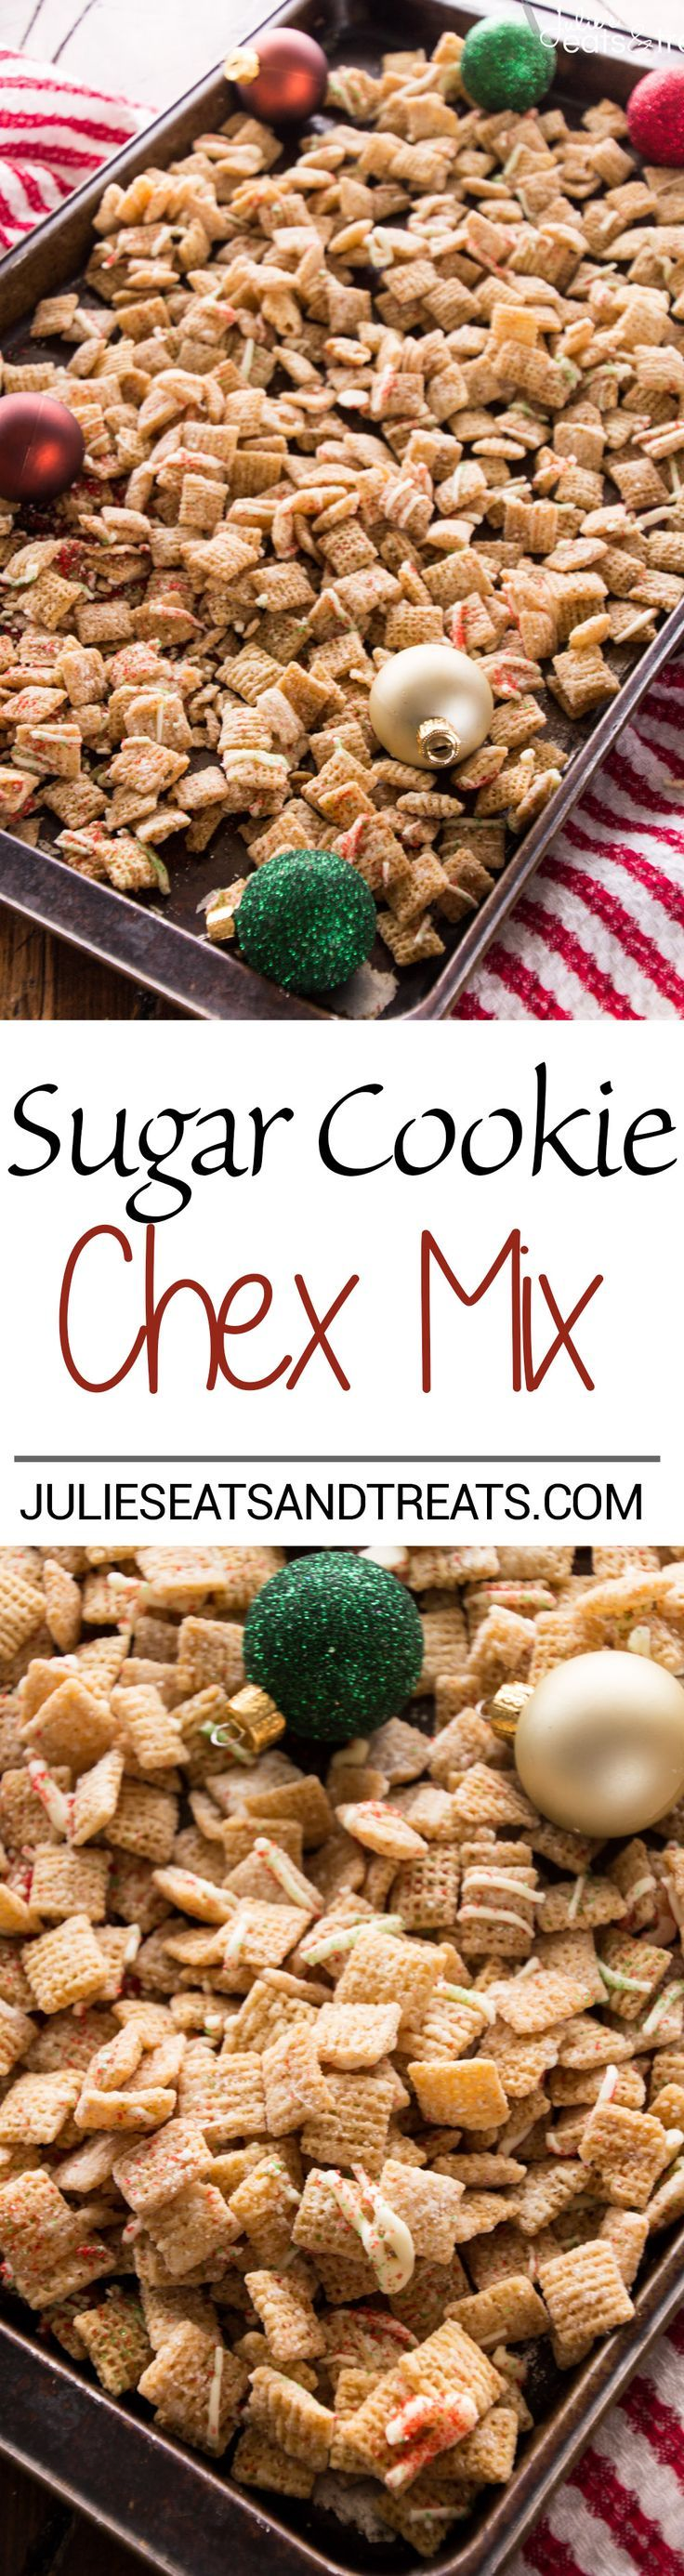 Sugar Cookie Chex Mix Recipe ~ Celebrate the Holidays with this Fast and Easy Snack Mix Recipe that tastes just like Sugar Cookies! @ChexCereal #ChexMagic #ad: http://www.julieseatsandtreats.com/sugar-cookie-chex-mix-recipe/